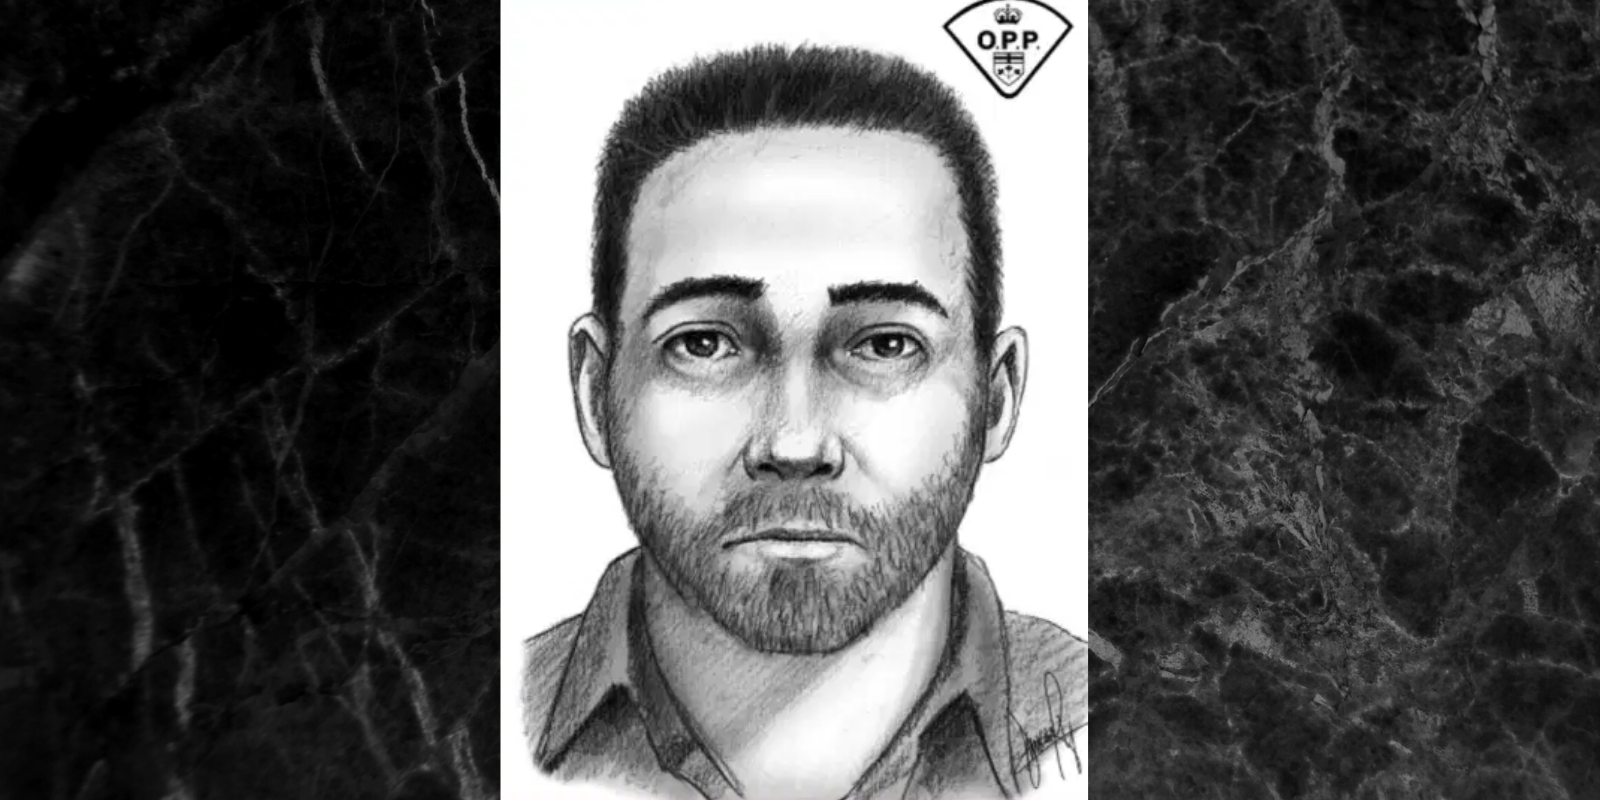 OPP release sketch of suspect impersonating police officer